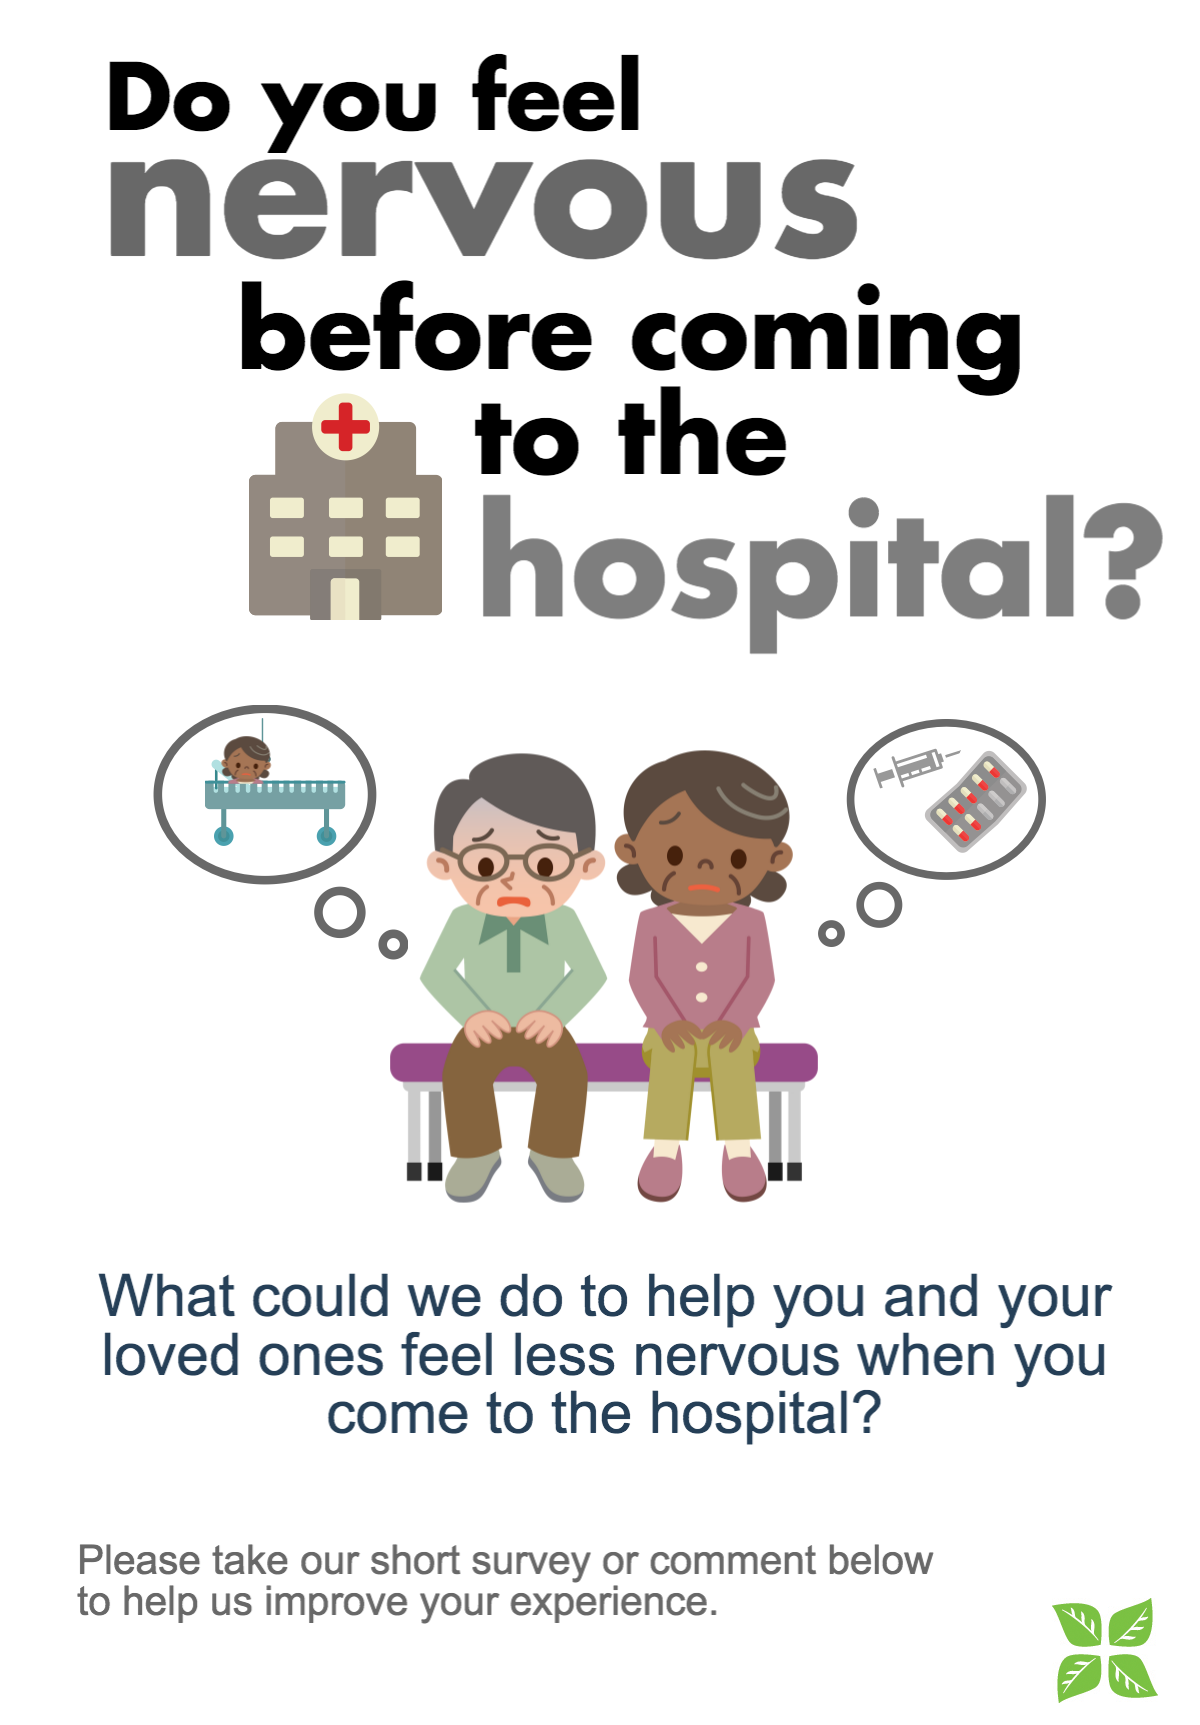 Do you feel nervous before coming to the hospital? What could we do to help you and your loved ones feel less nervous when you come to the hospital? Please take our short survey or comment below to help us improve your experience.